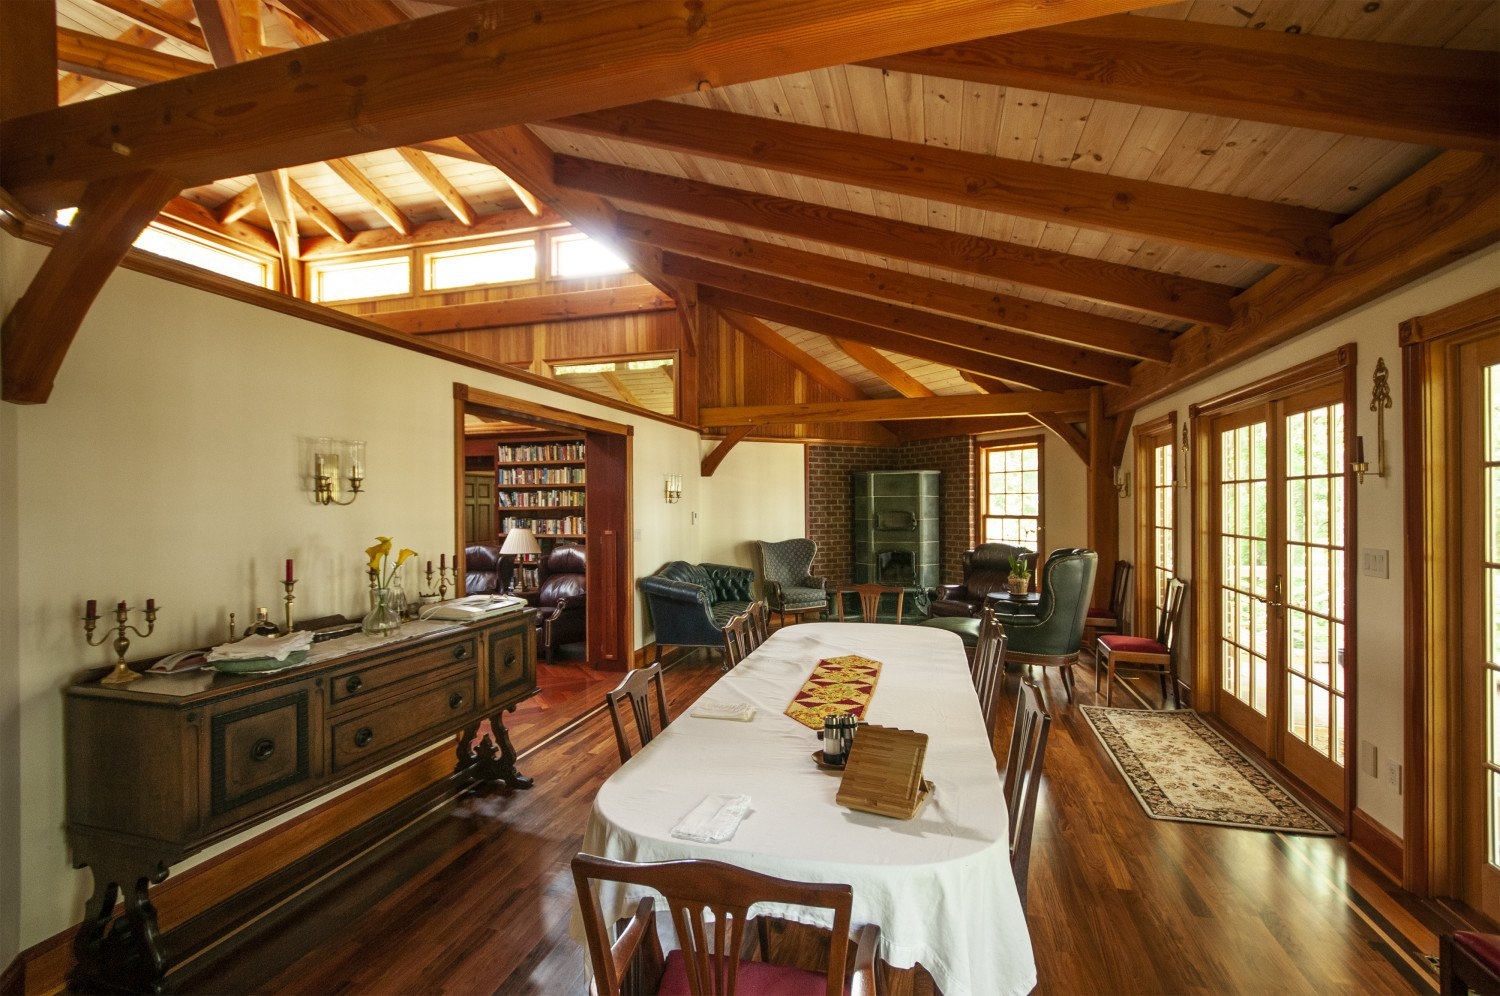 The reading nook at the far end of the dining room features a soap stone wood burner.